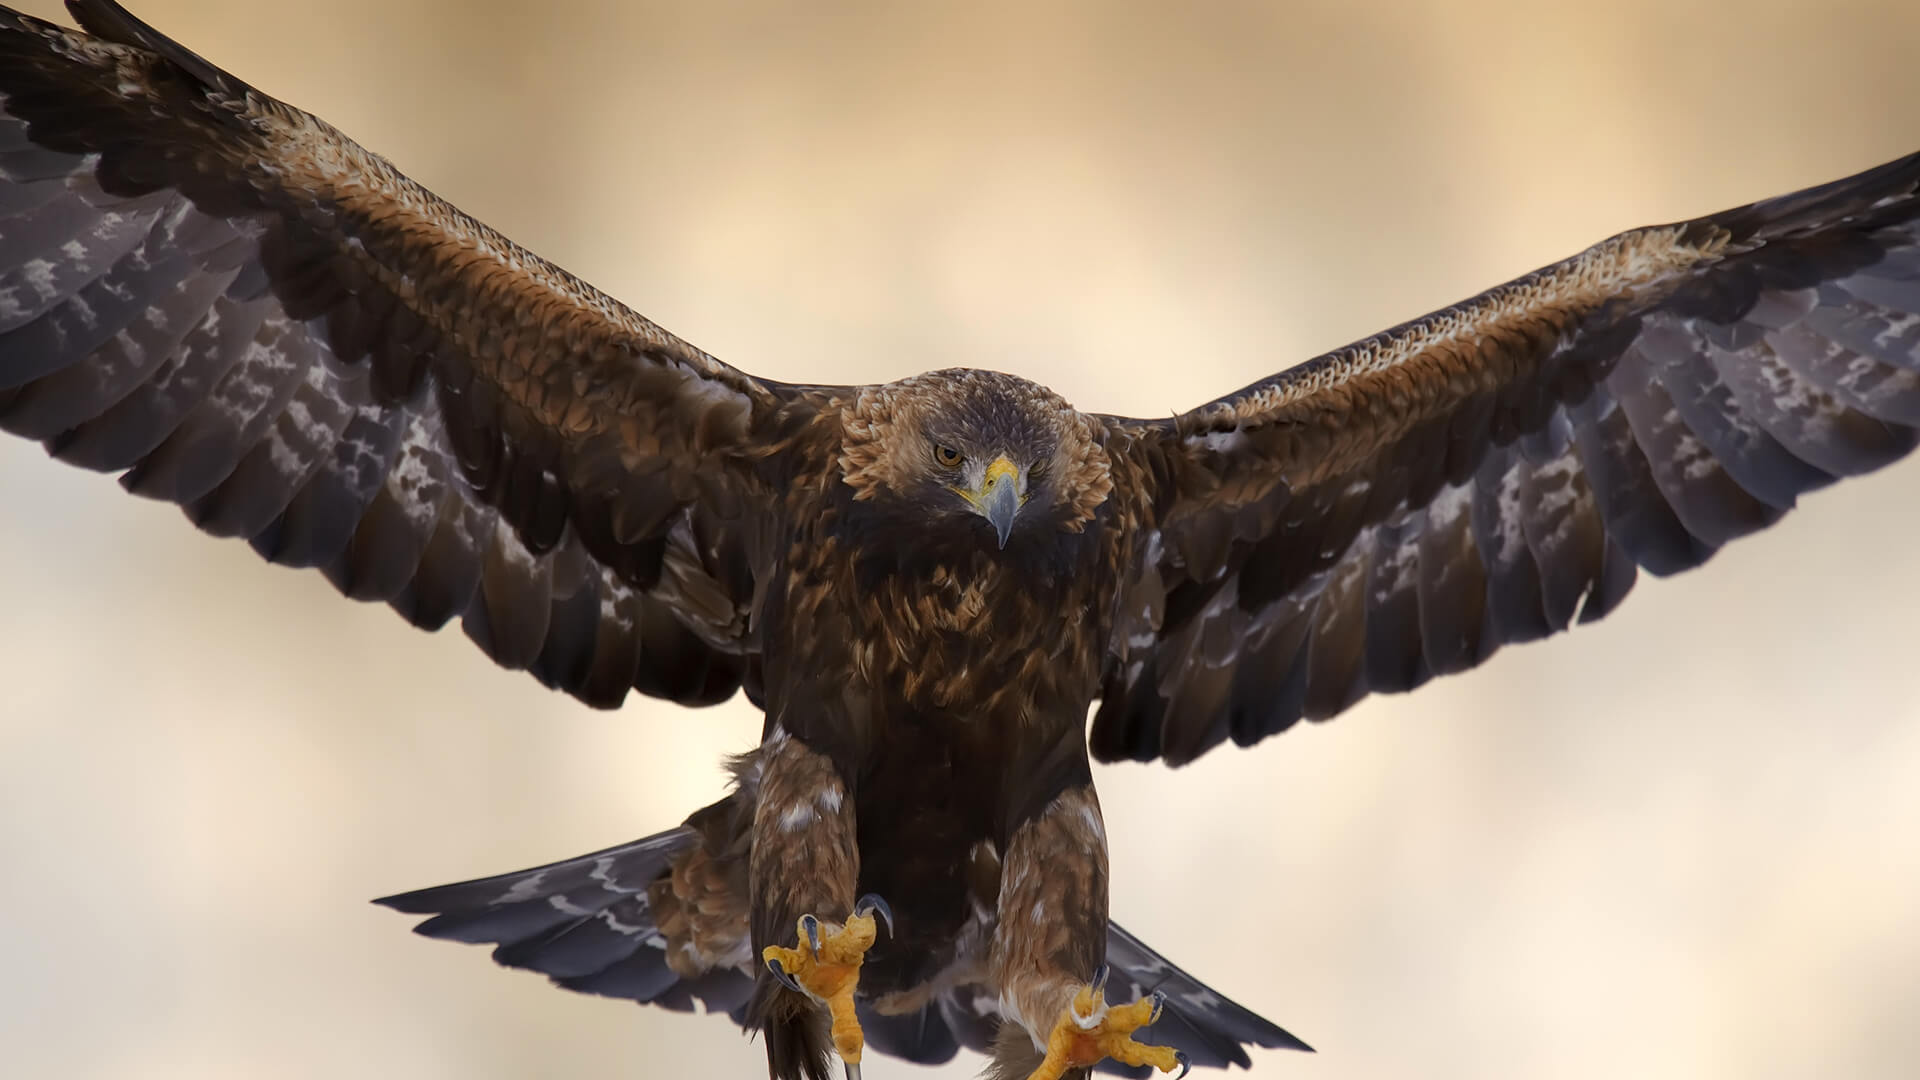 Drawn reptile golden eagle In wings and Golden goes